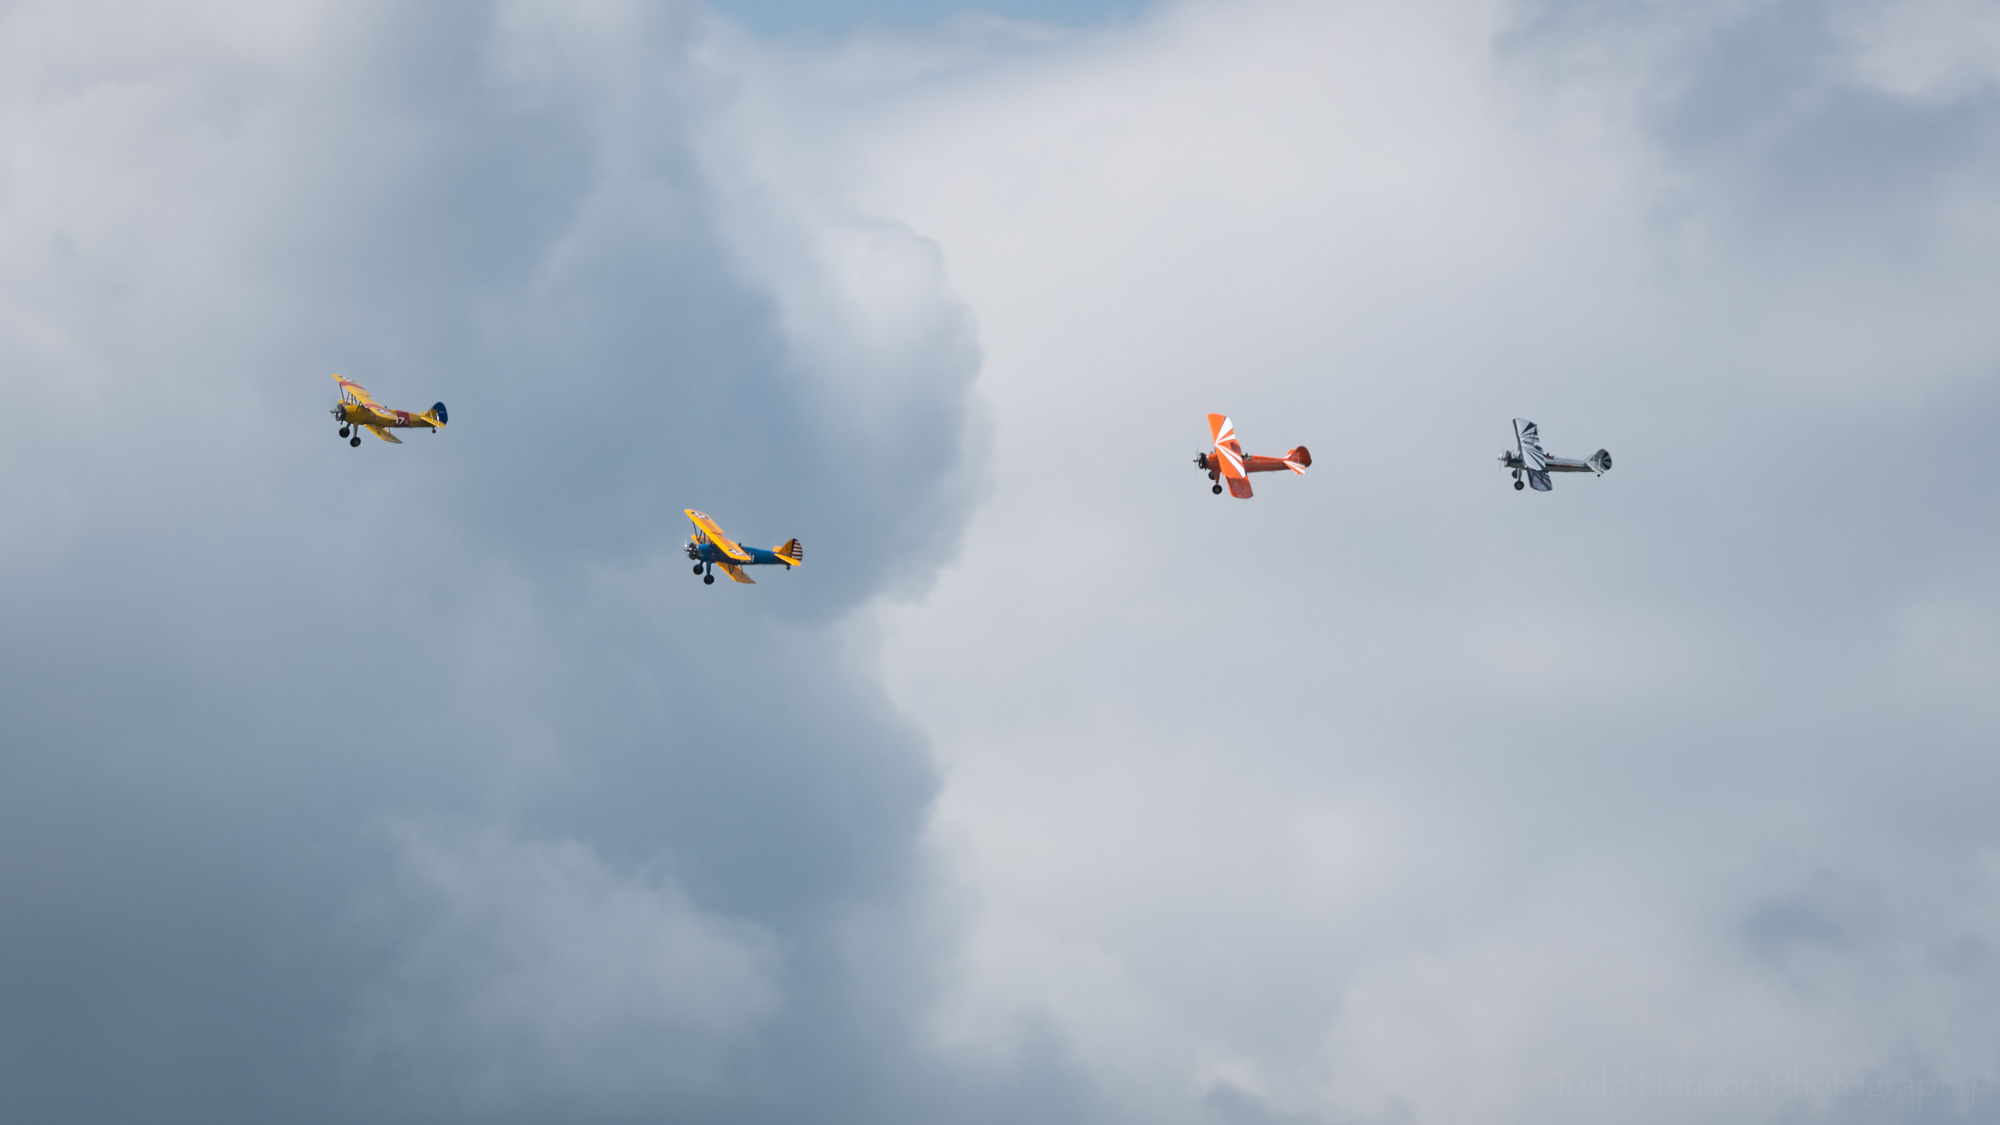 Four biplanes from the Bealeton Flying Circus flying in formation against the cloudy sky.